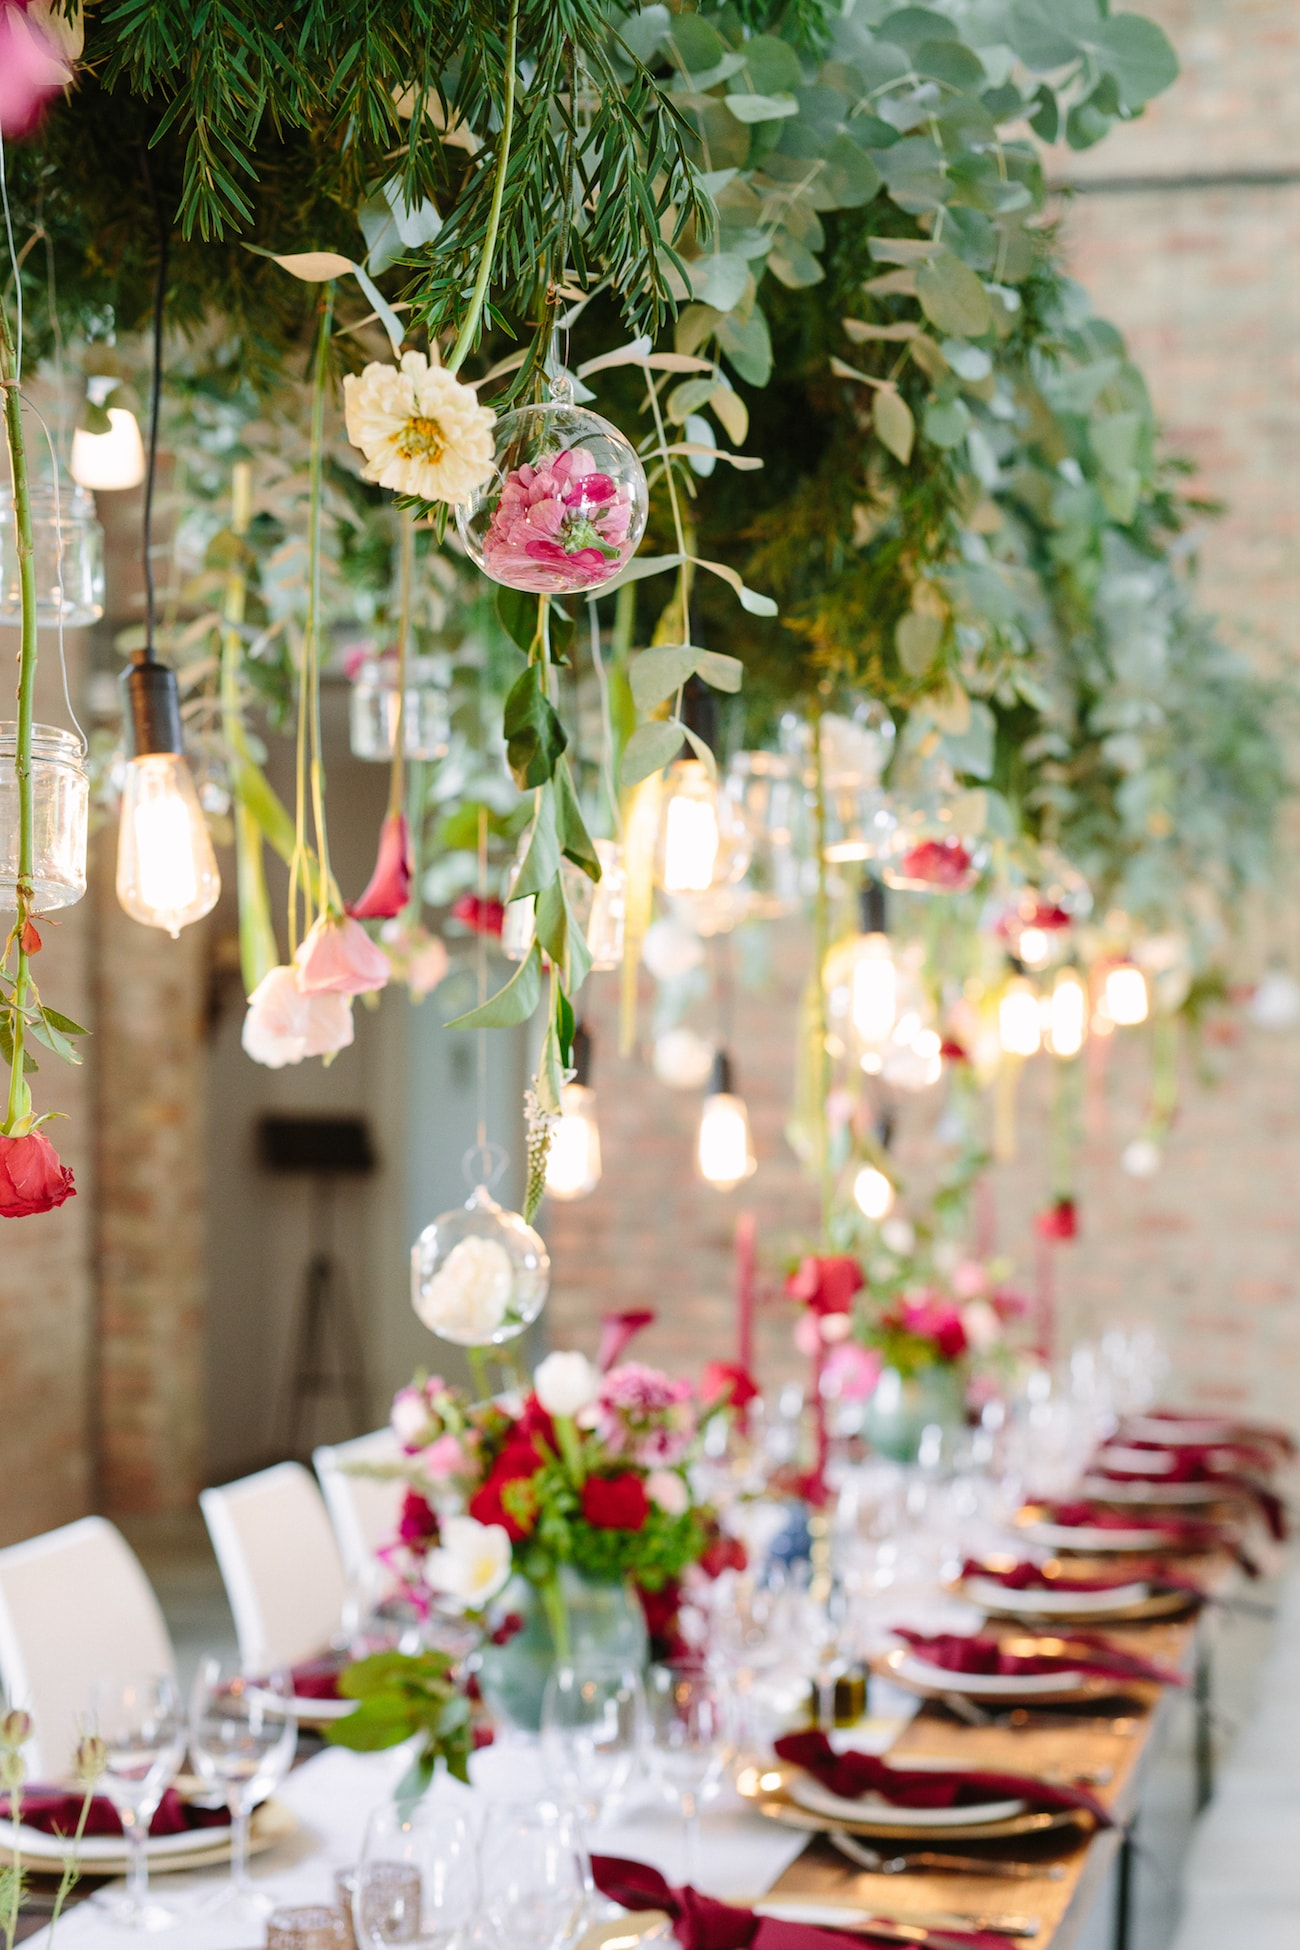 Hanging Lights & Flowers | Image: Tasha Seccombe